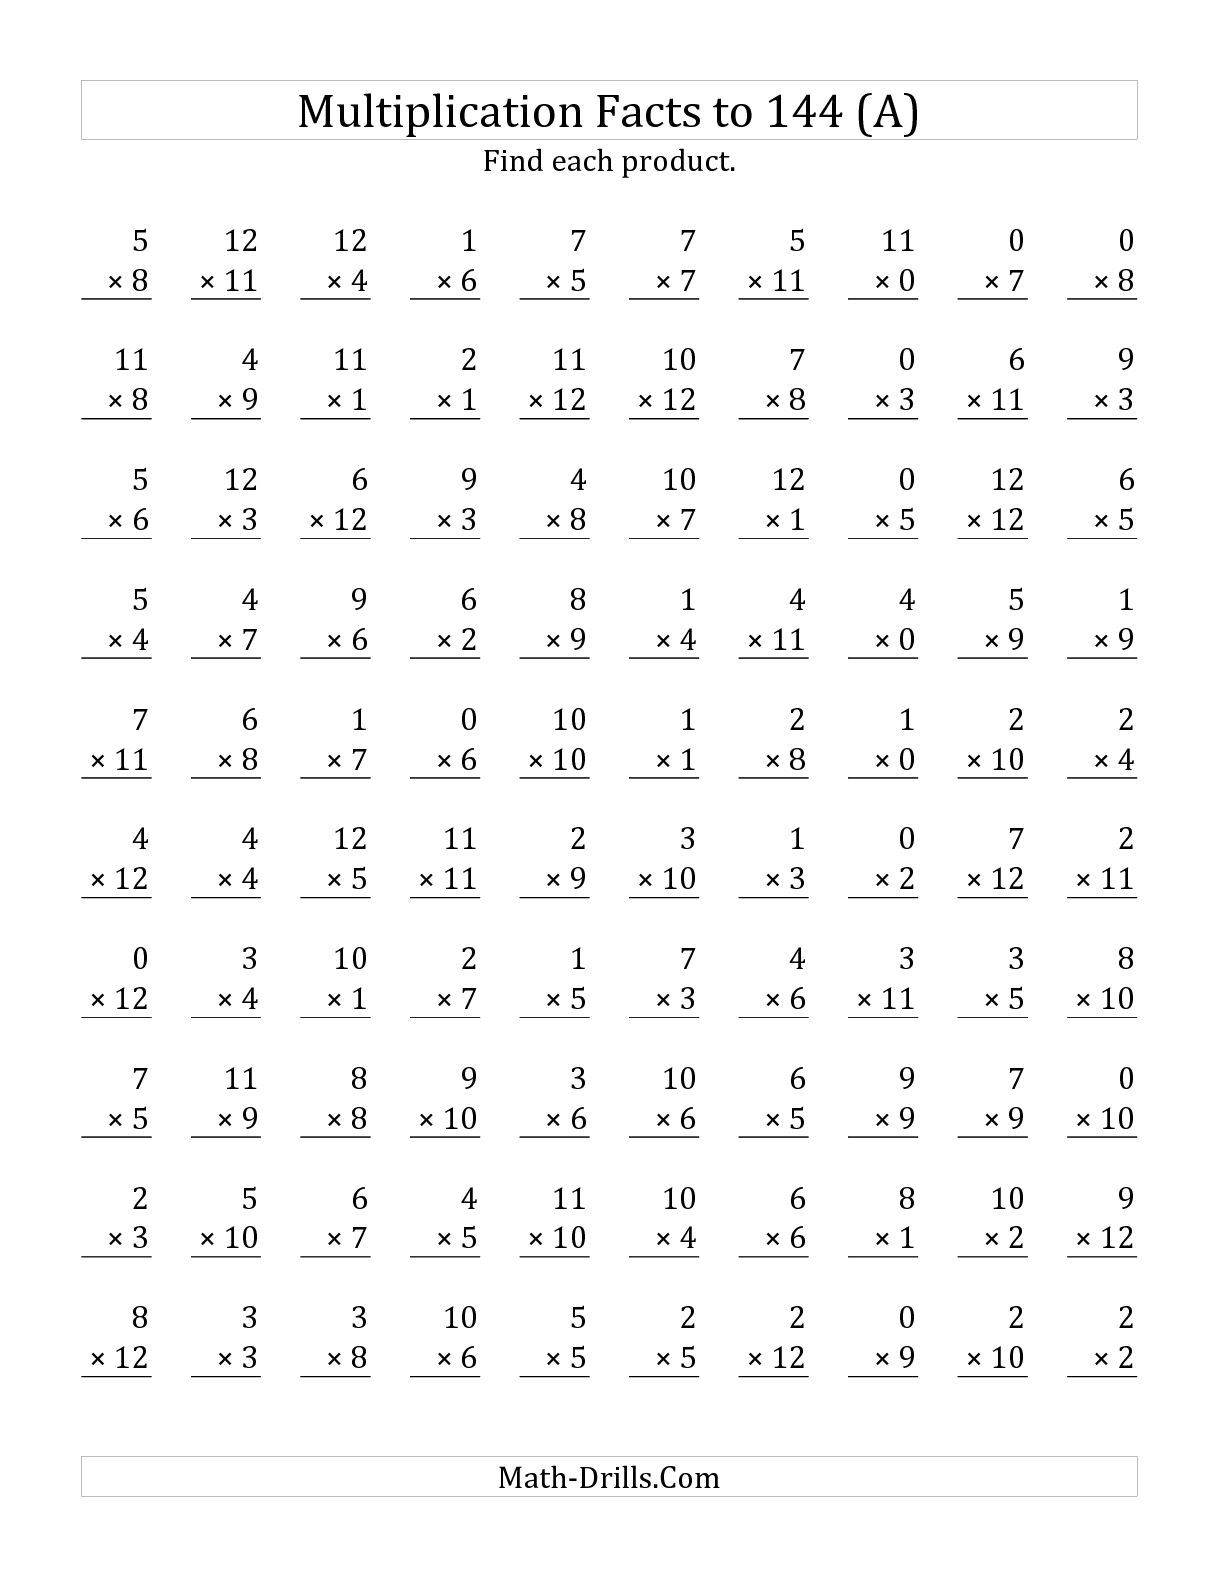 The Multiplication Facts to 144 Including Zeros A math worksheet